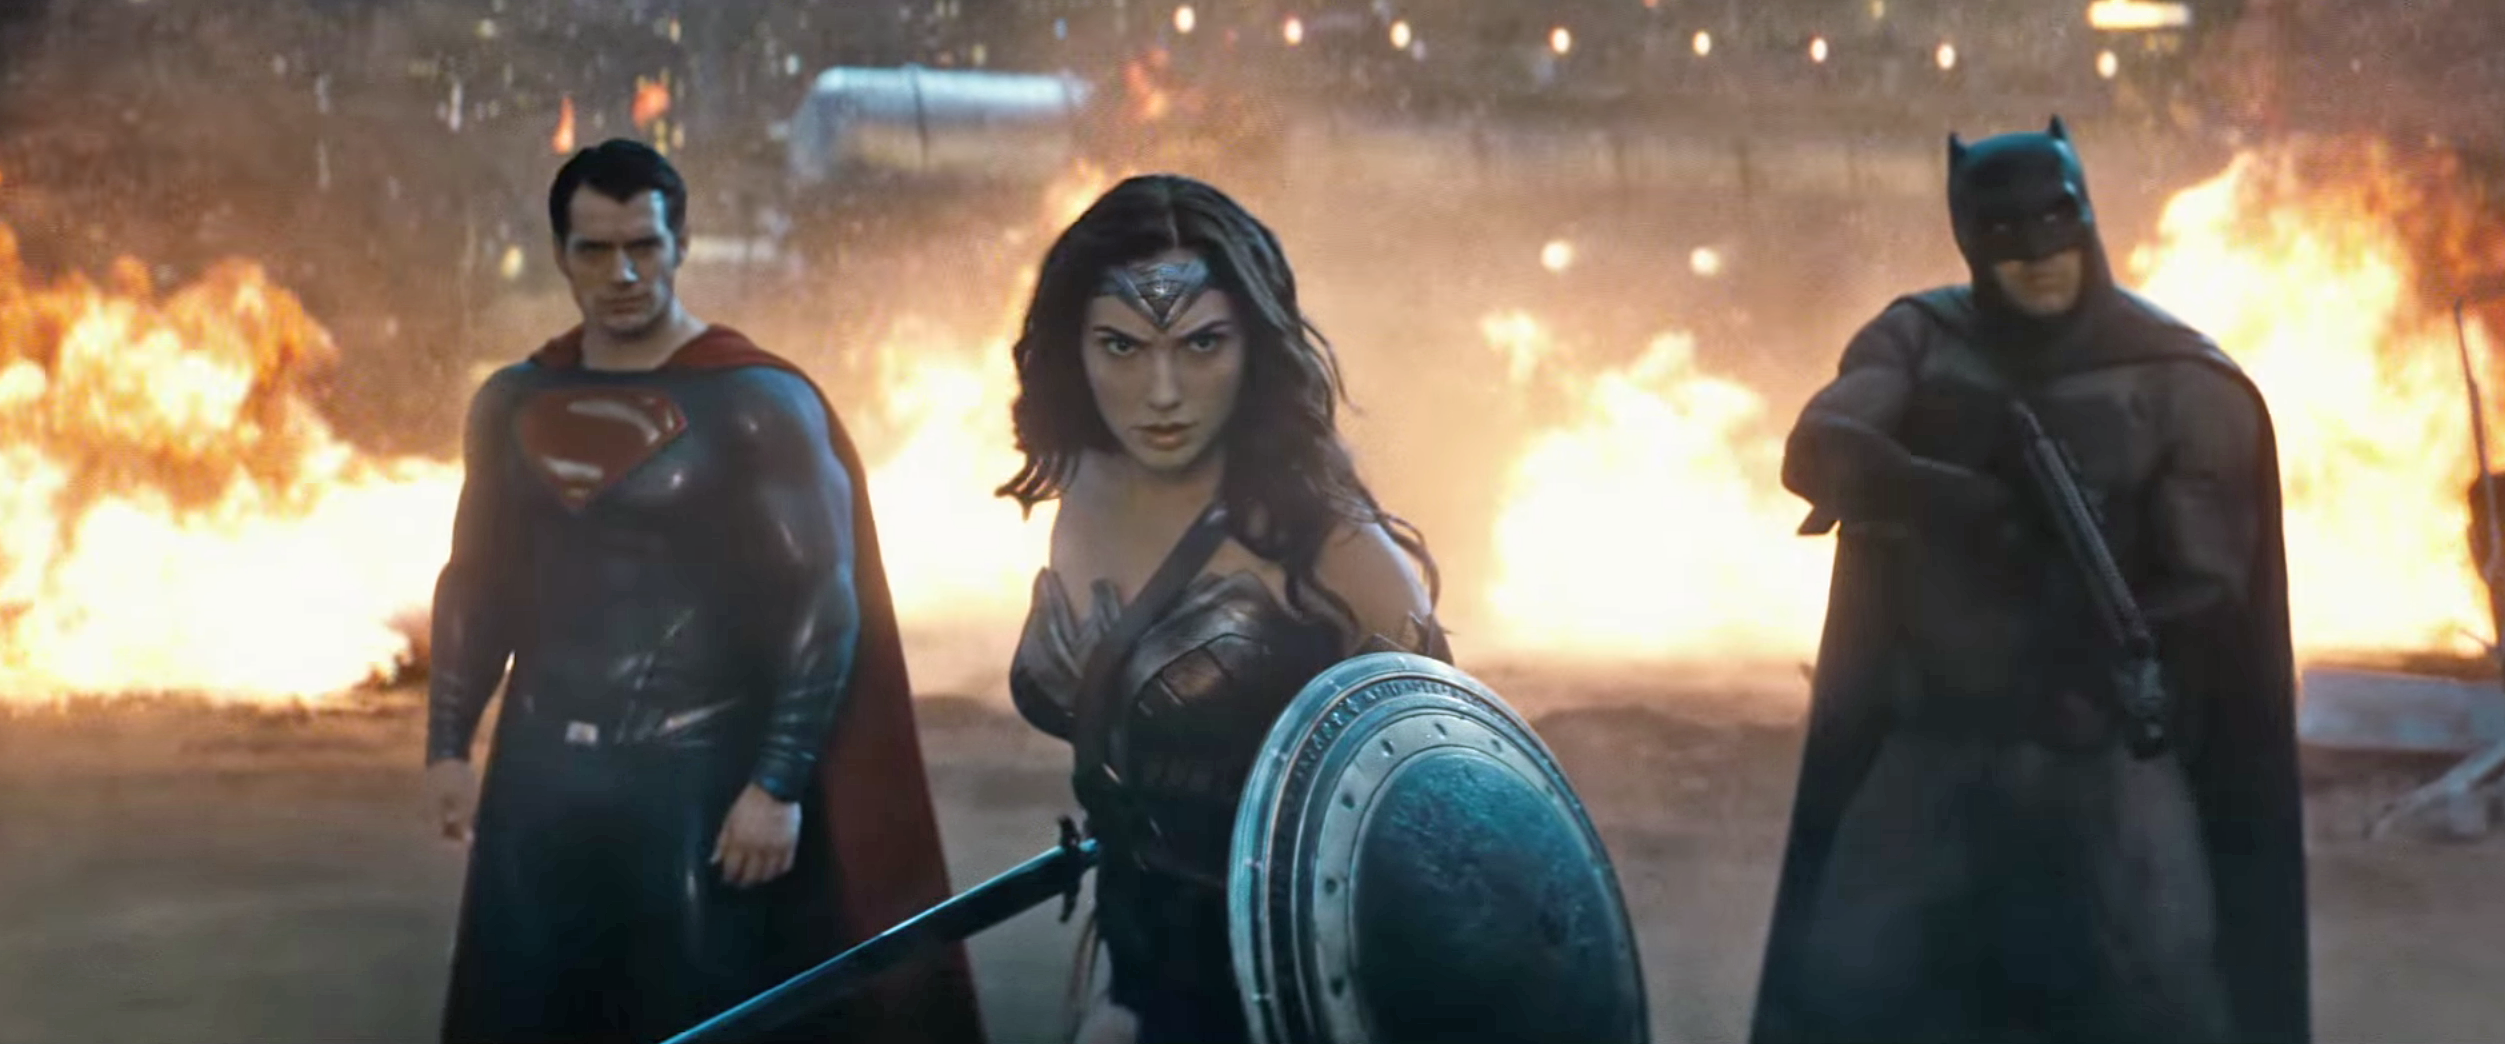 Watch 11 Minutes Of Batman v Superman, Constructed From All Of The Film's Promos